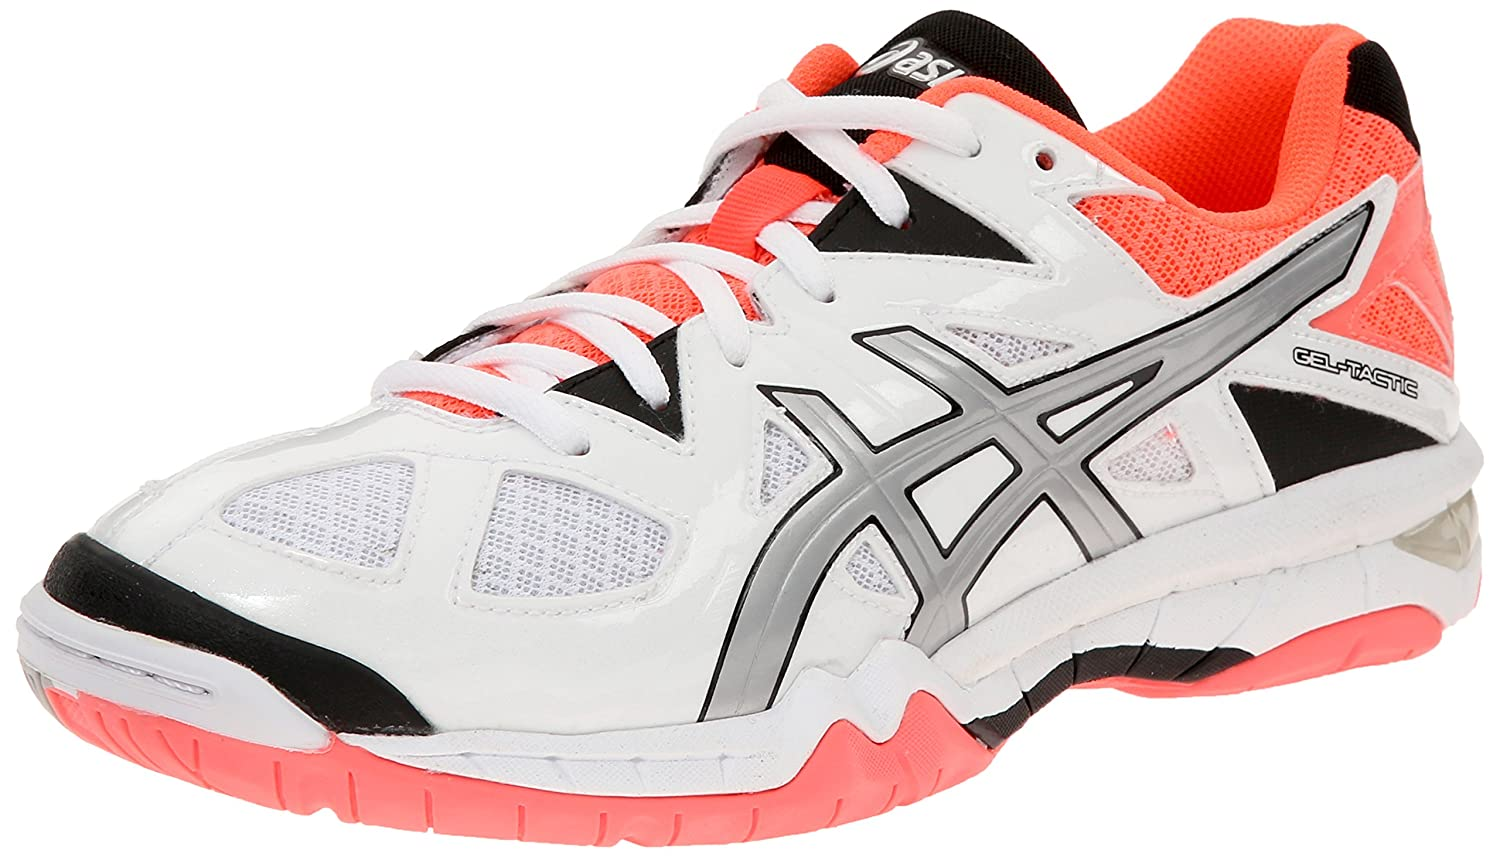 ASICS Women's Gel Tactic Volleyball Shoe B00Q2JKWYC 11.5 B(M) US|White/Silver/Flash Coral